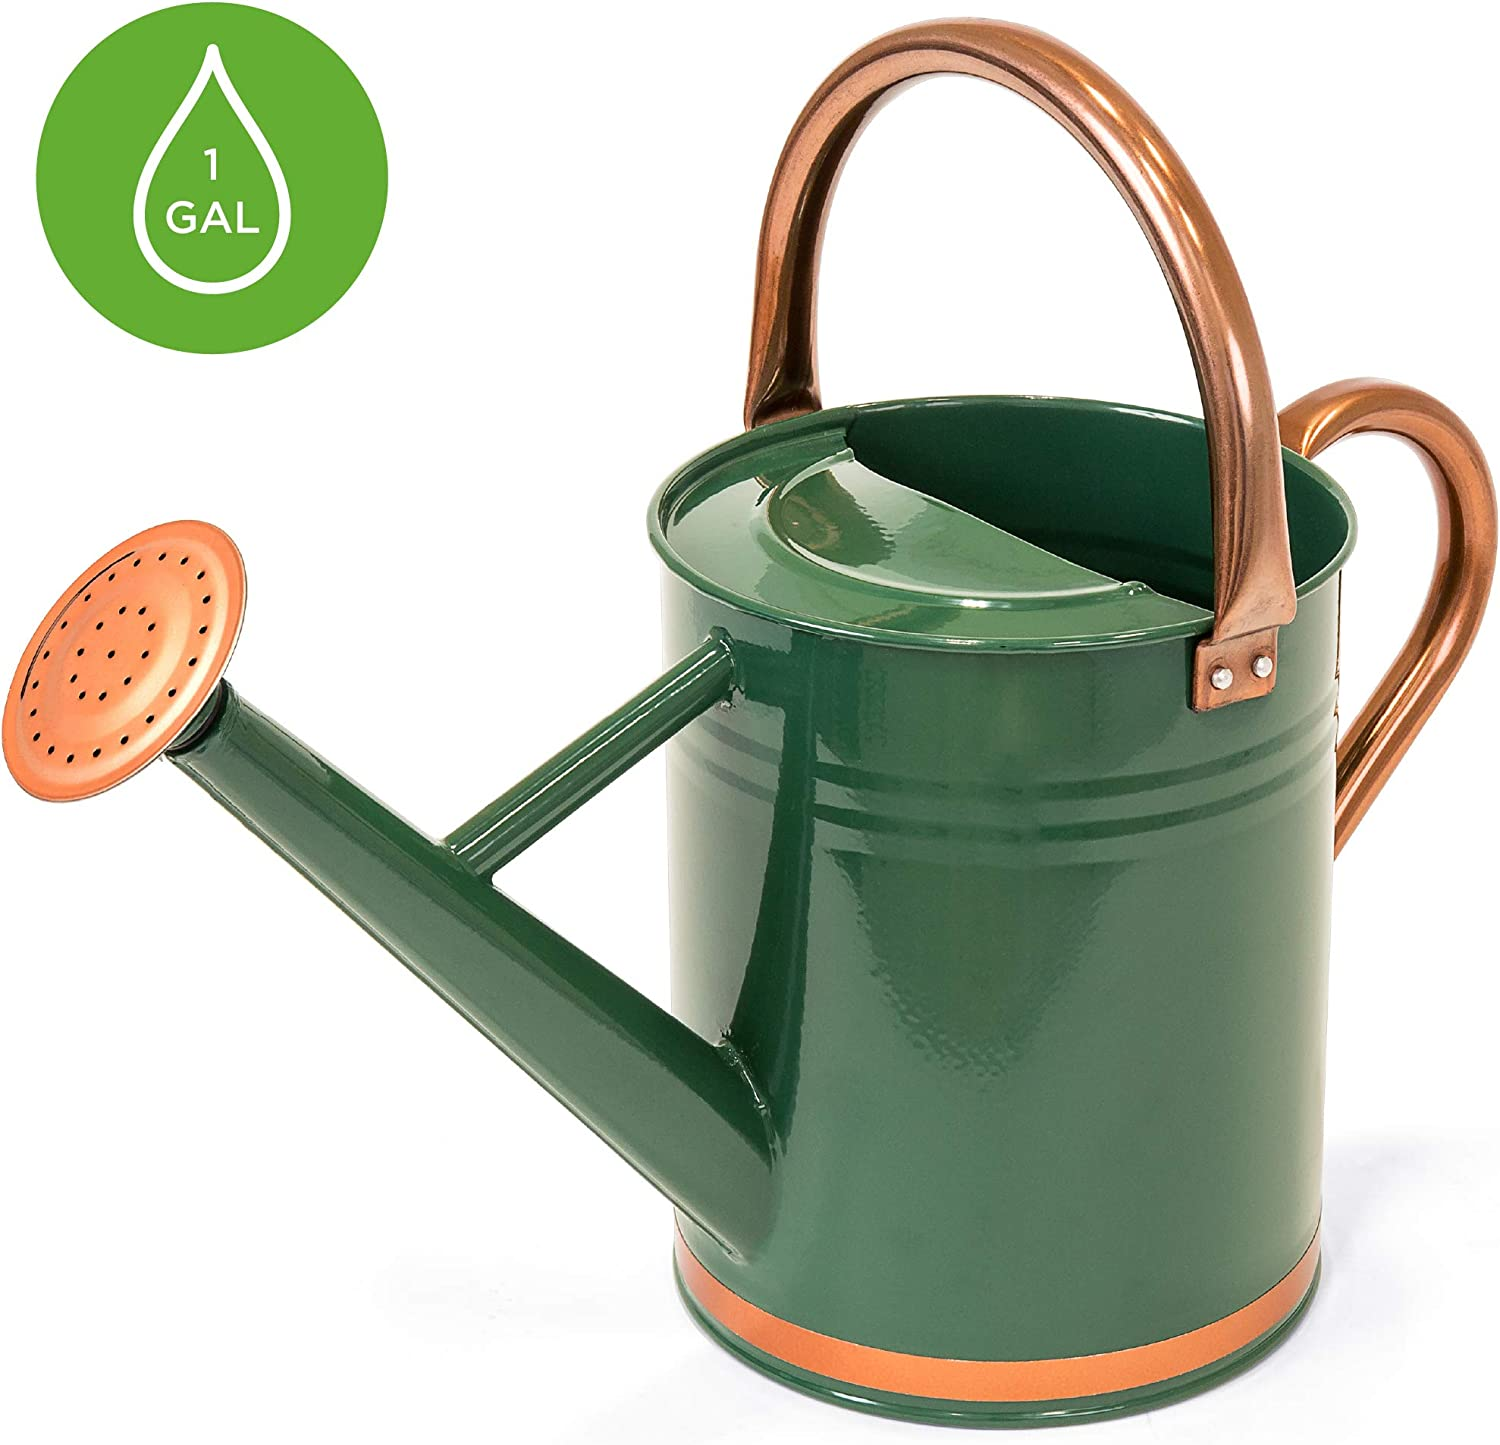 Best Choice Products 1-Gallon Galvanized Steel Watering Can for Gardening w/O-Ring, Top Handle, Copper Accents